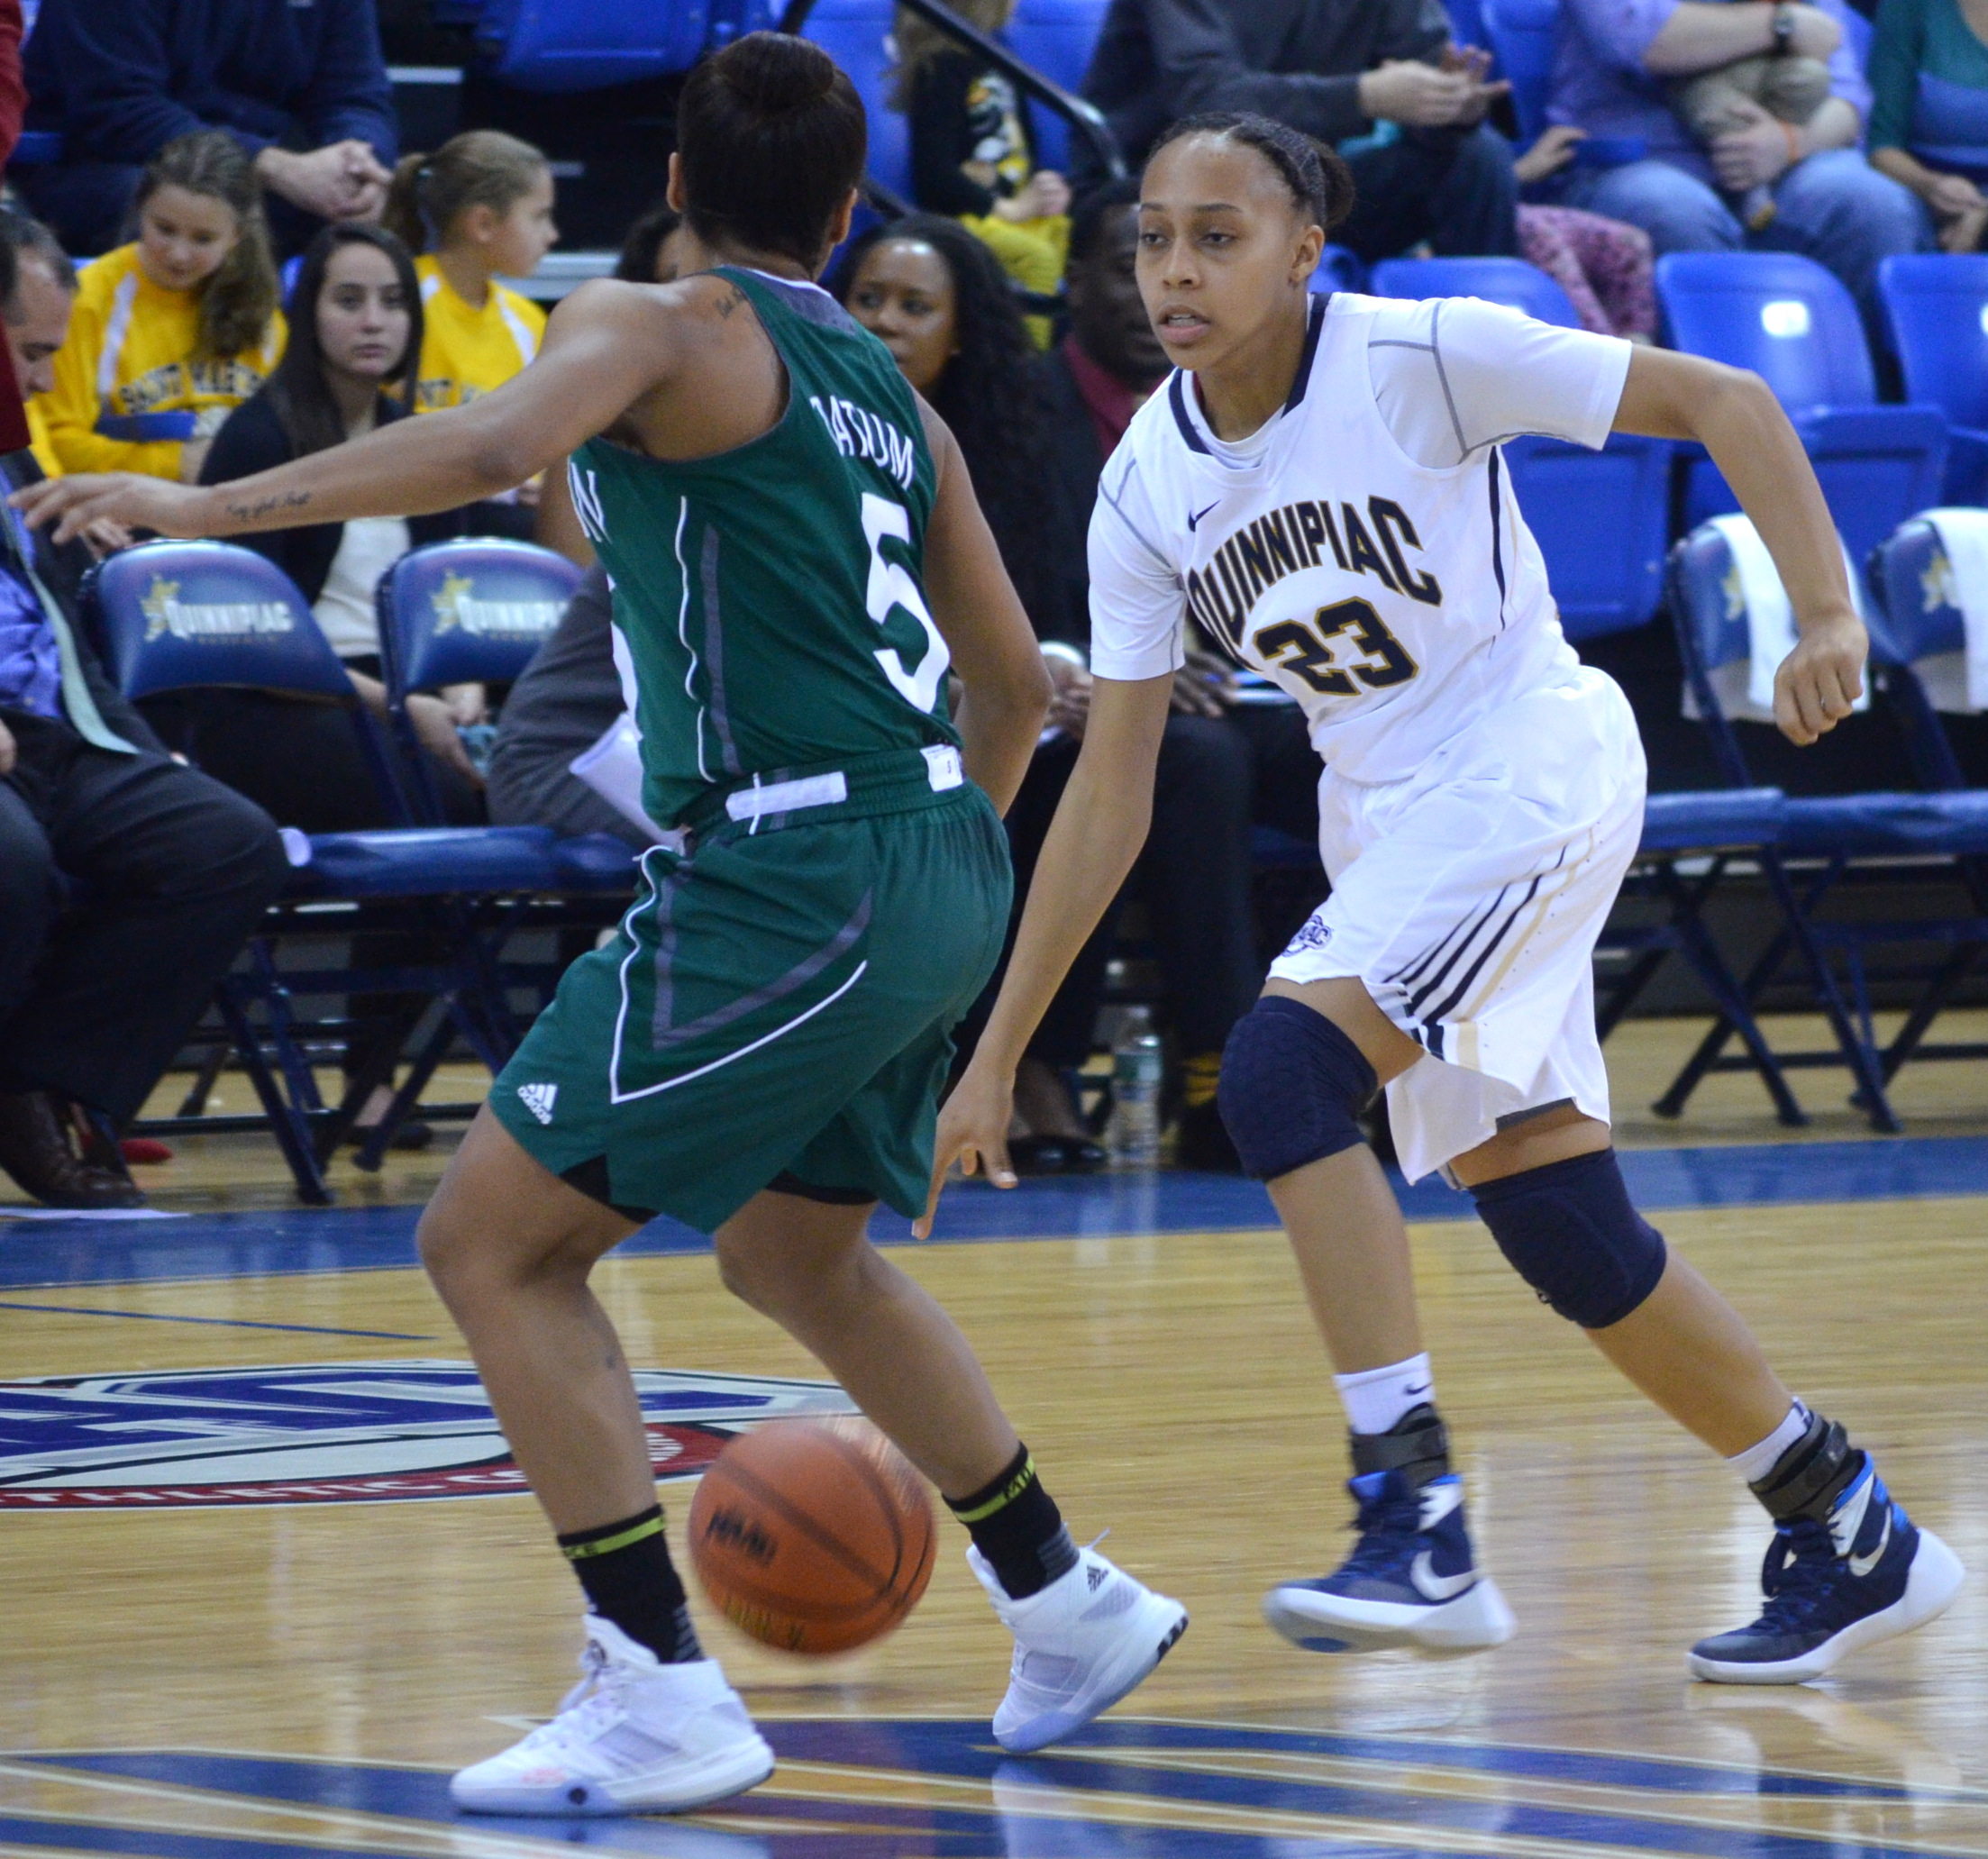 Jordan Novack|Quinnipiac Chronicle Jasmine Martin drives towards the net vs Manhattan 12/6/15